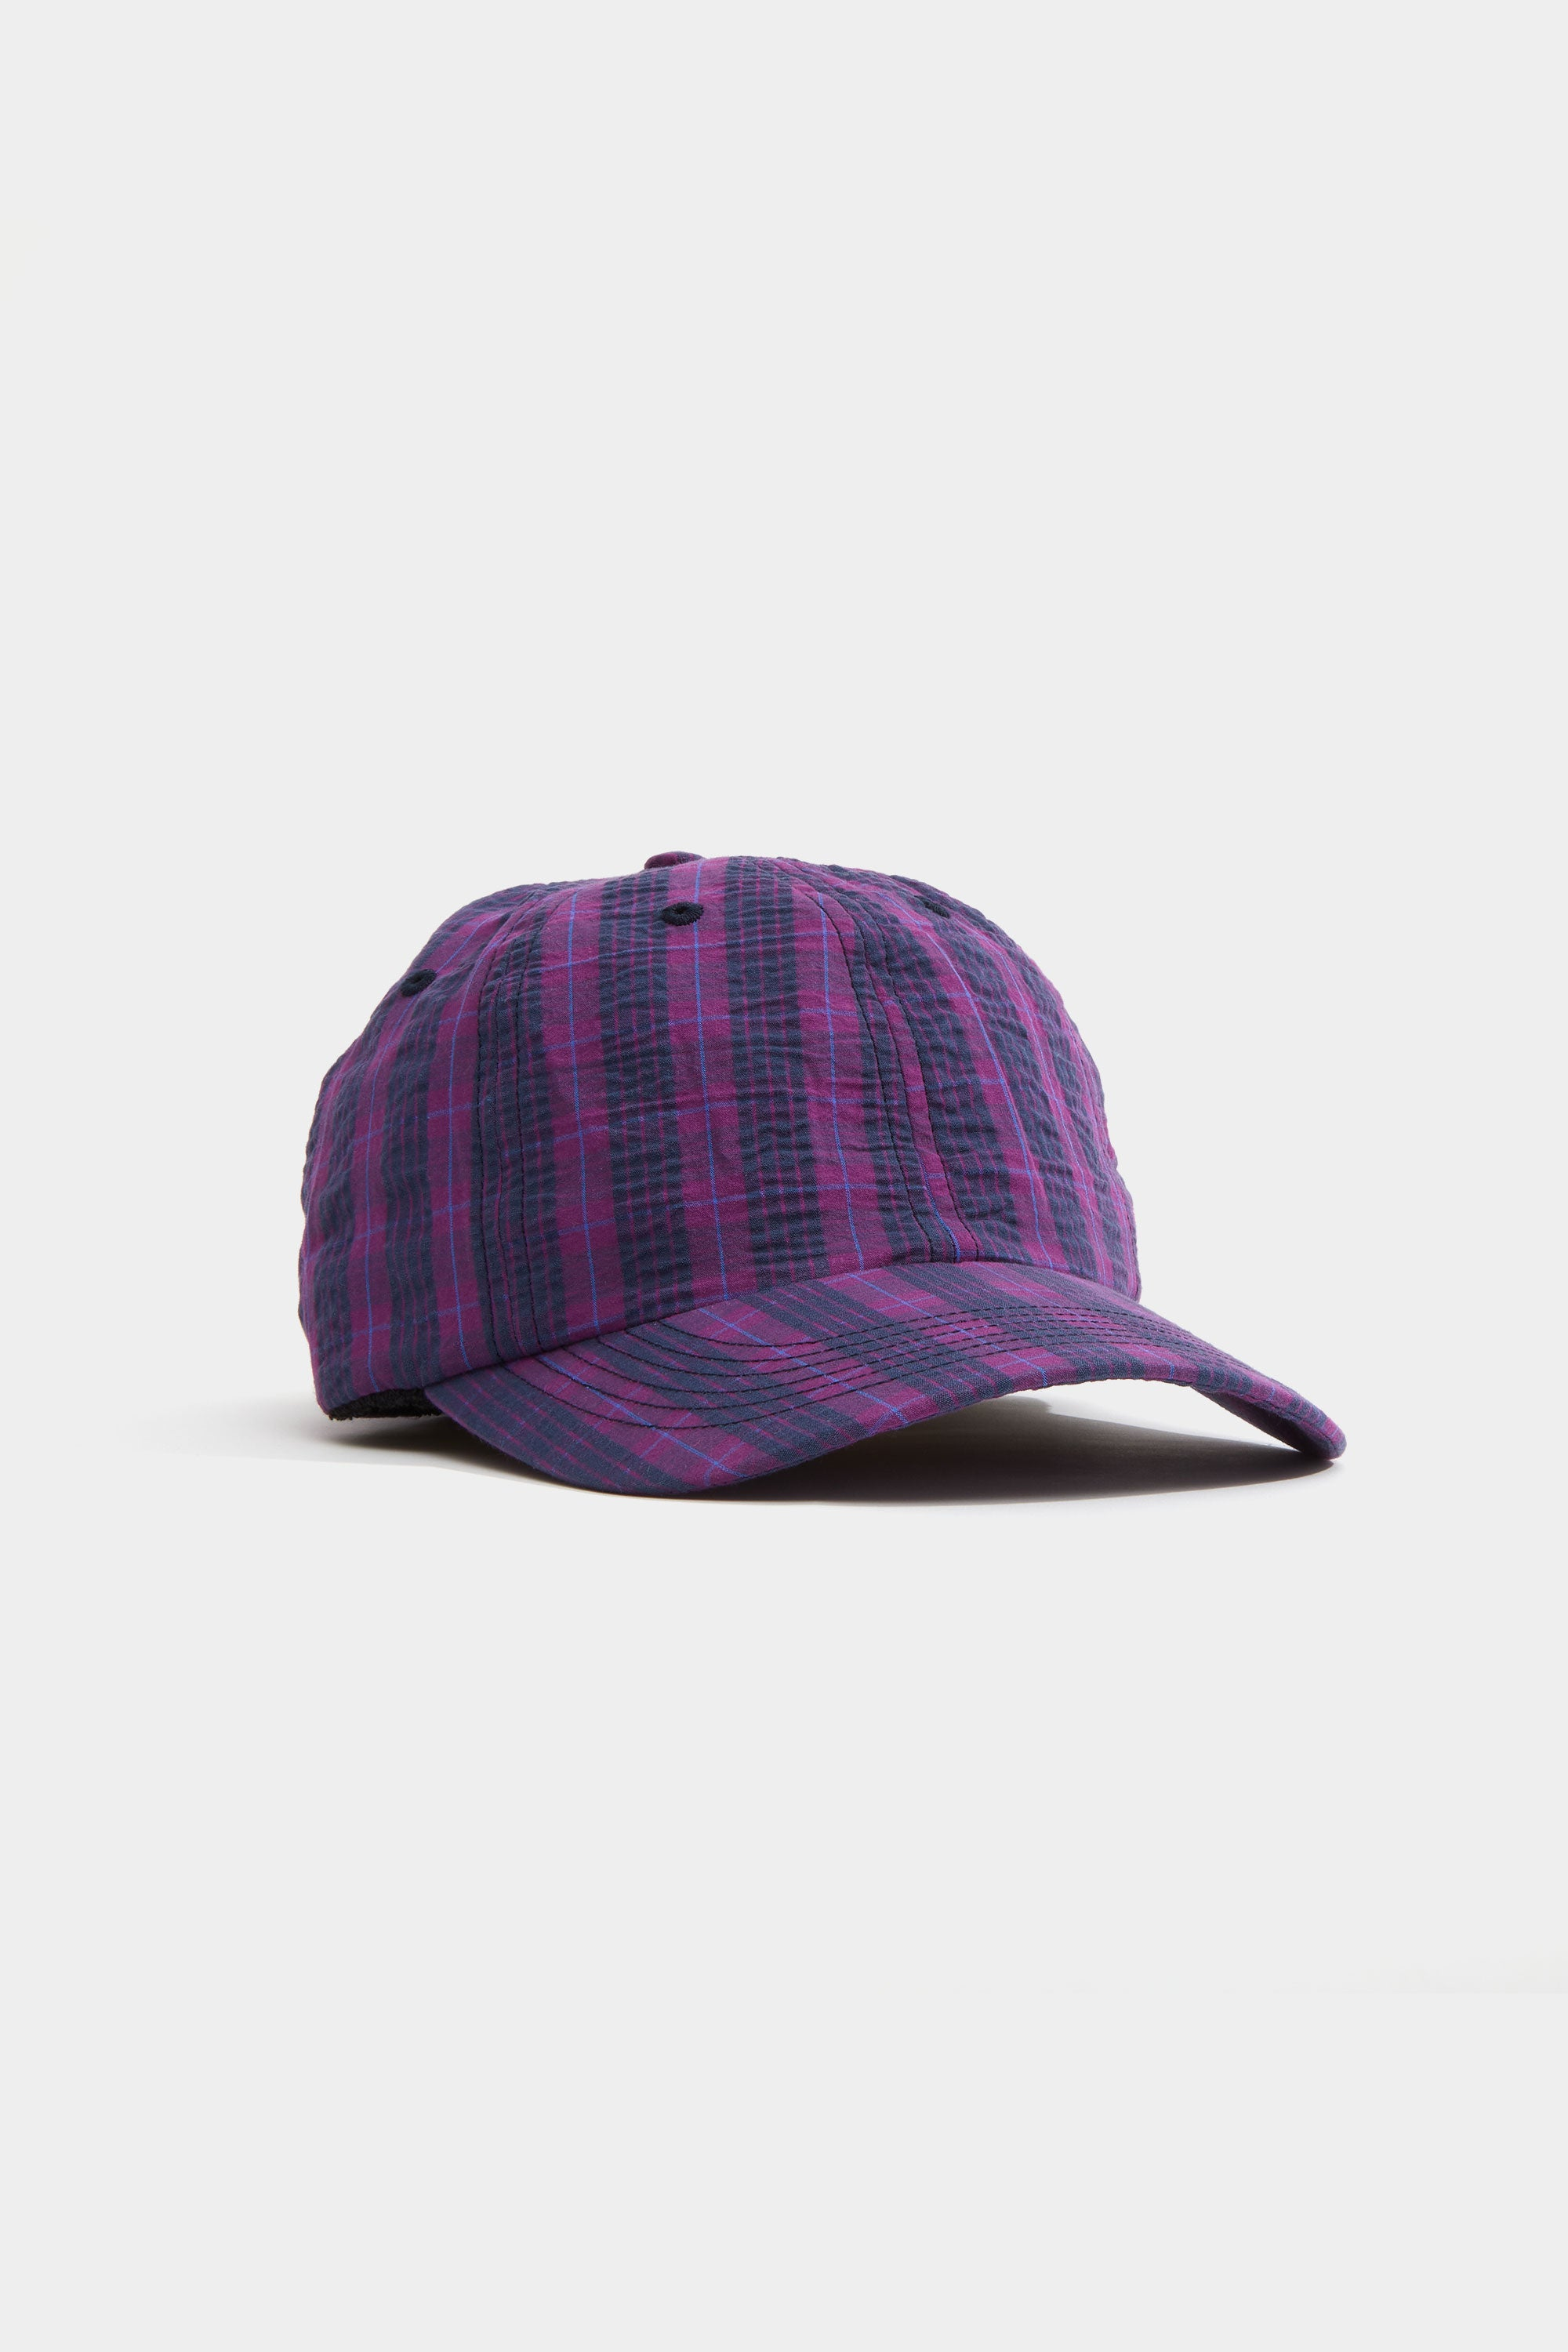 Adsum Purple Plaid Hat Front